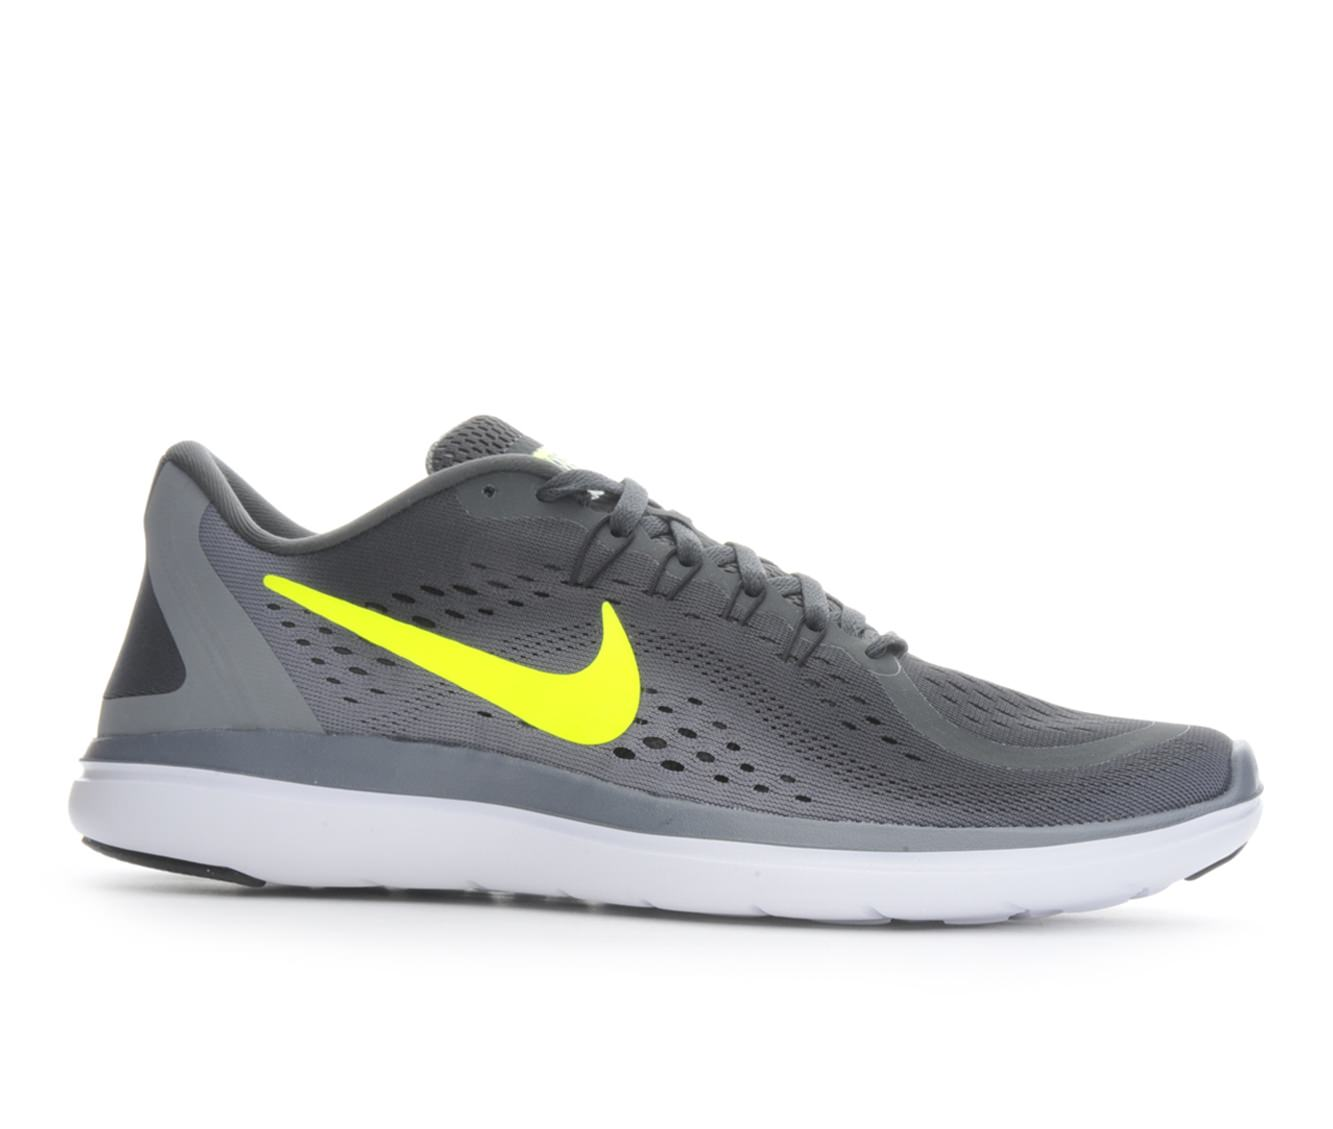 Men's Nike Flex 2017 Run Running Shoes (Grey - Size 11) 1631465